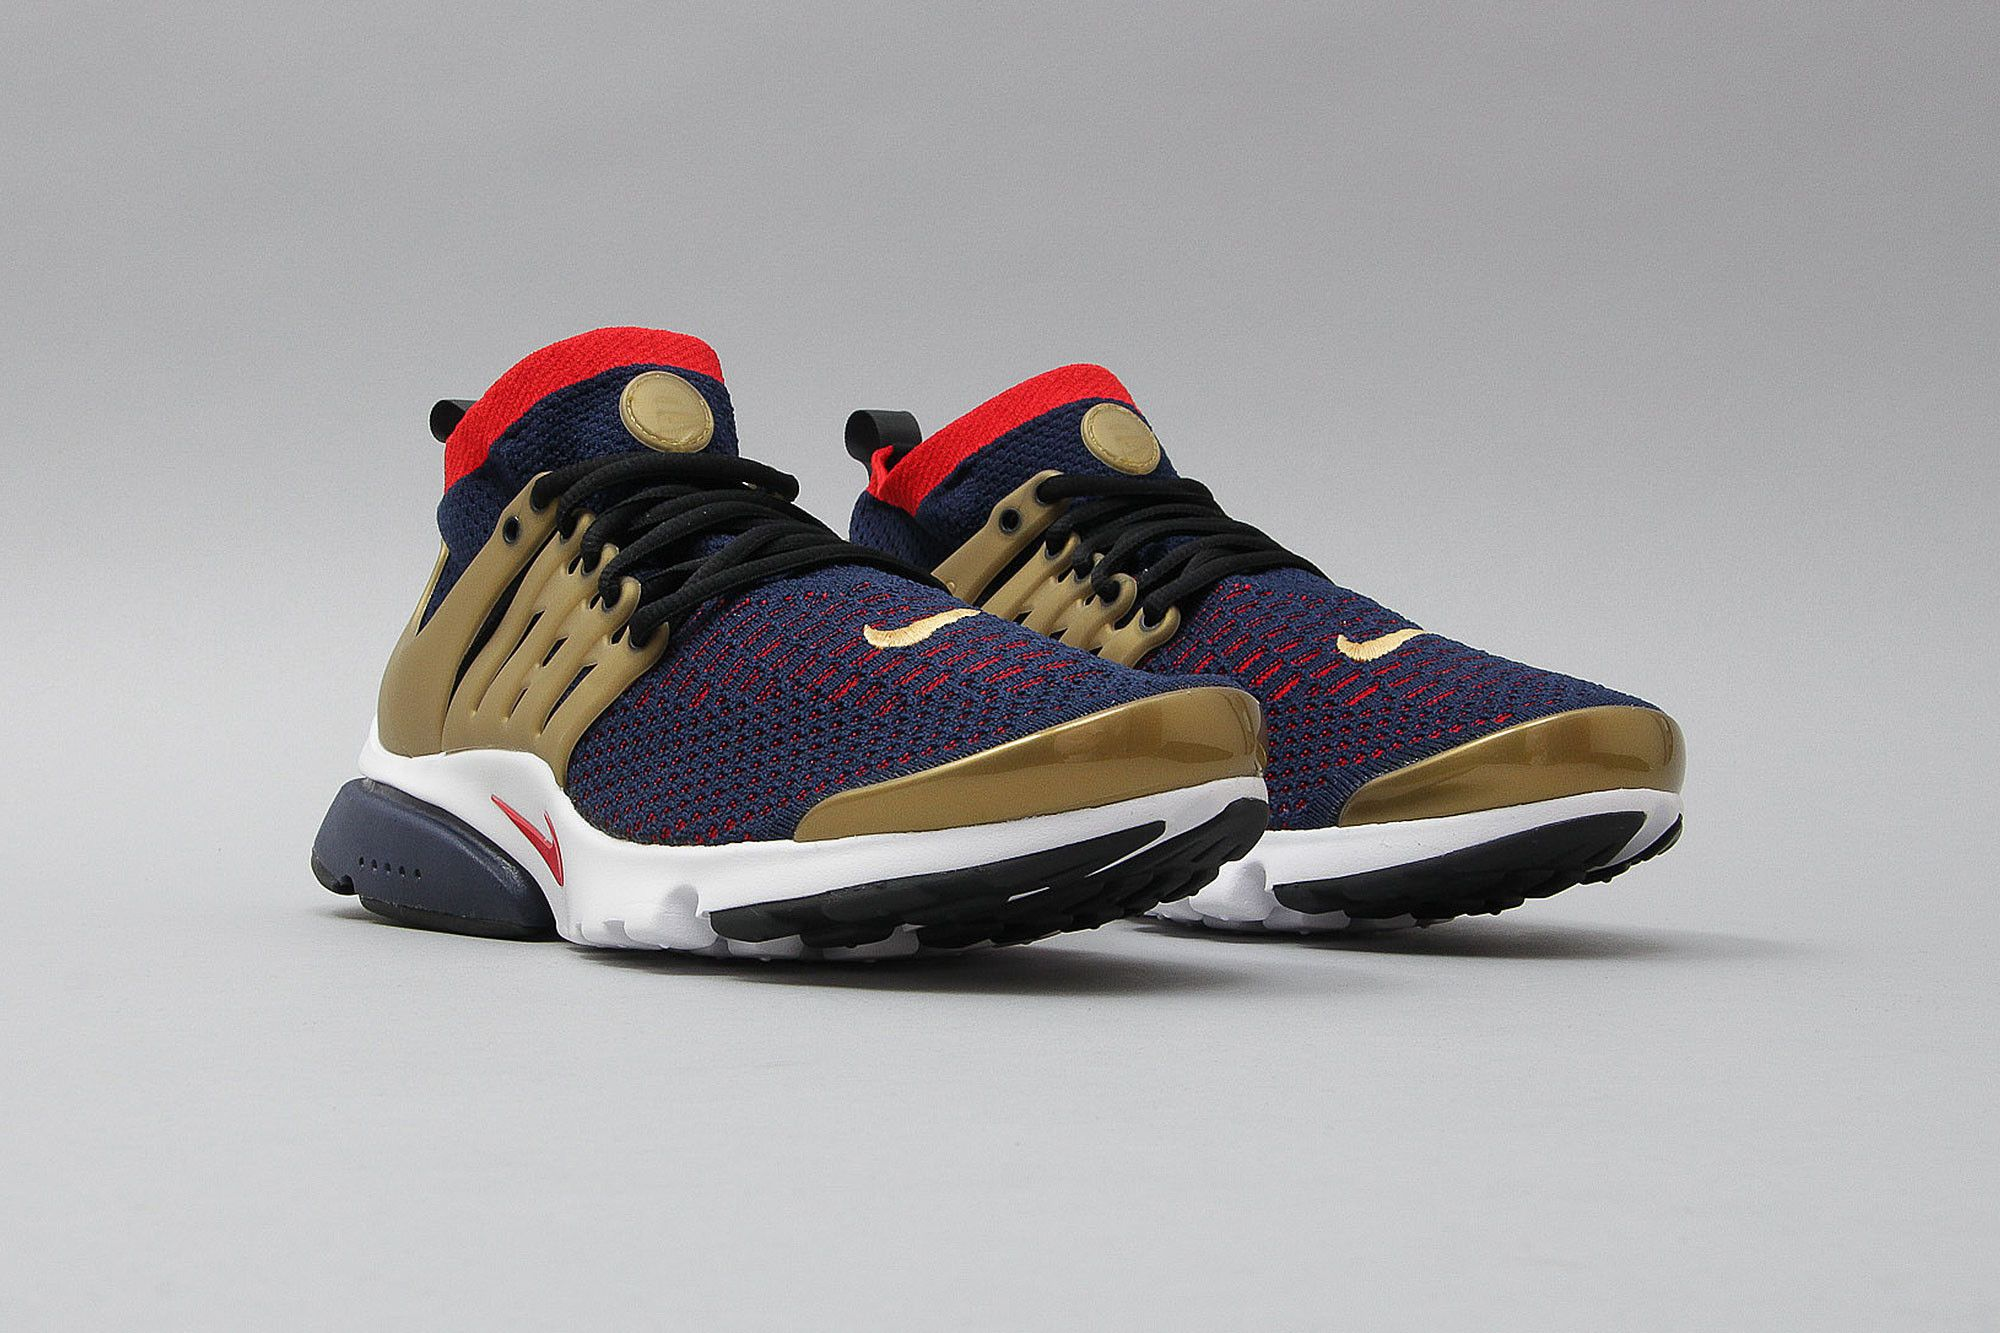 detailed pictures df456 1ab7f Nike Air Presto Ultra Flyknit College Navy Comet Red Metallic Gold 835570  406 (Blau Rot